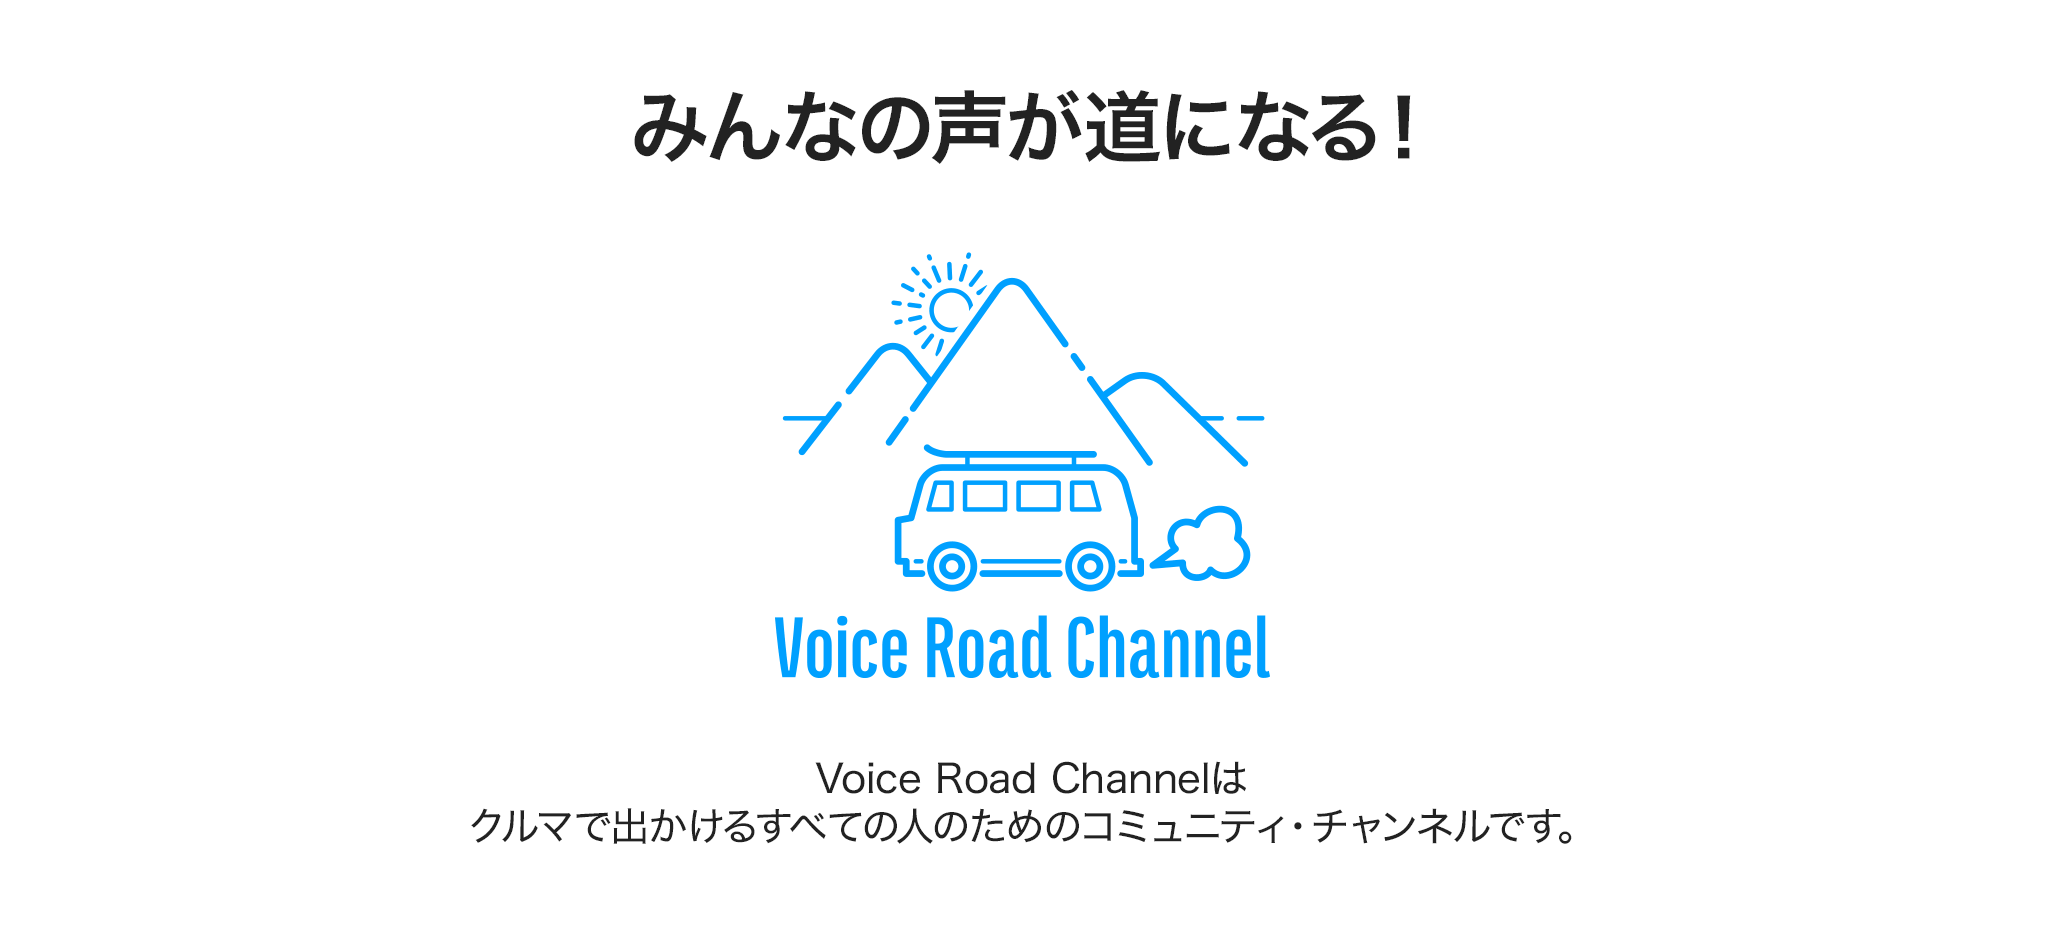 Voice Road Channel